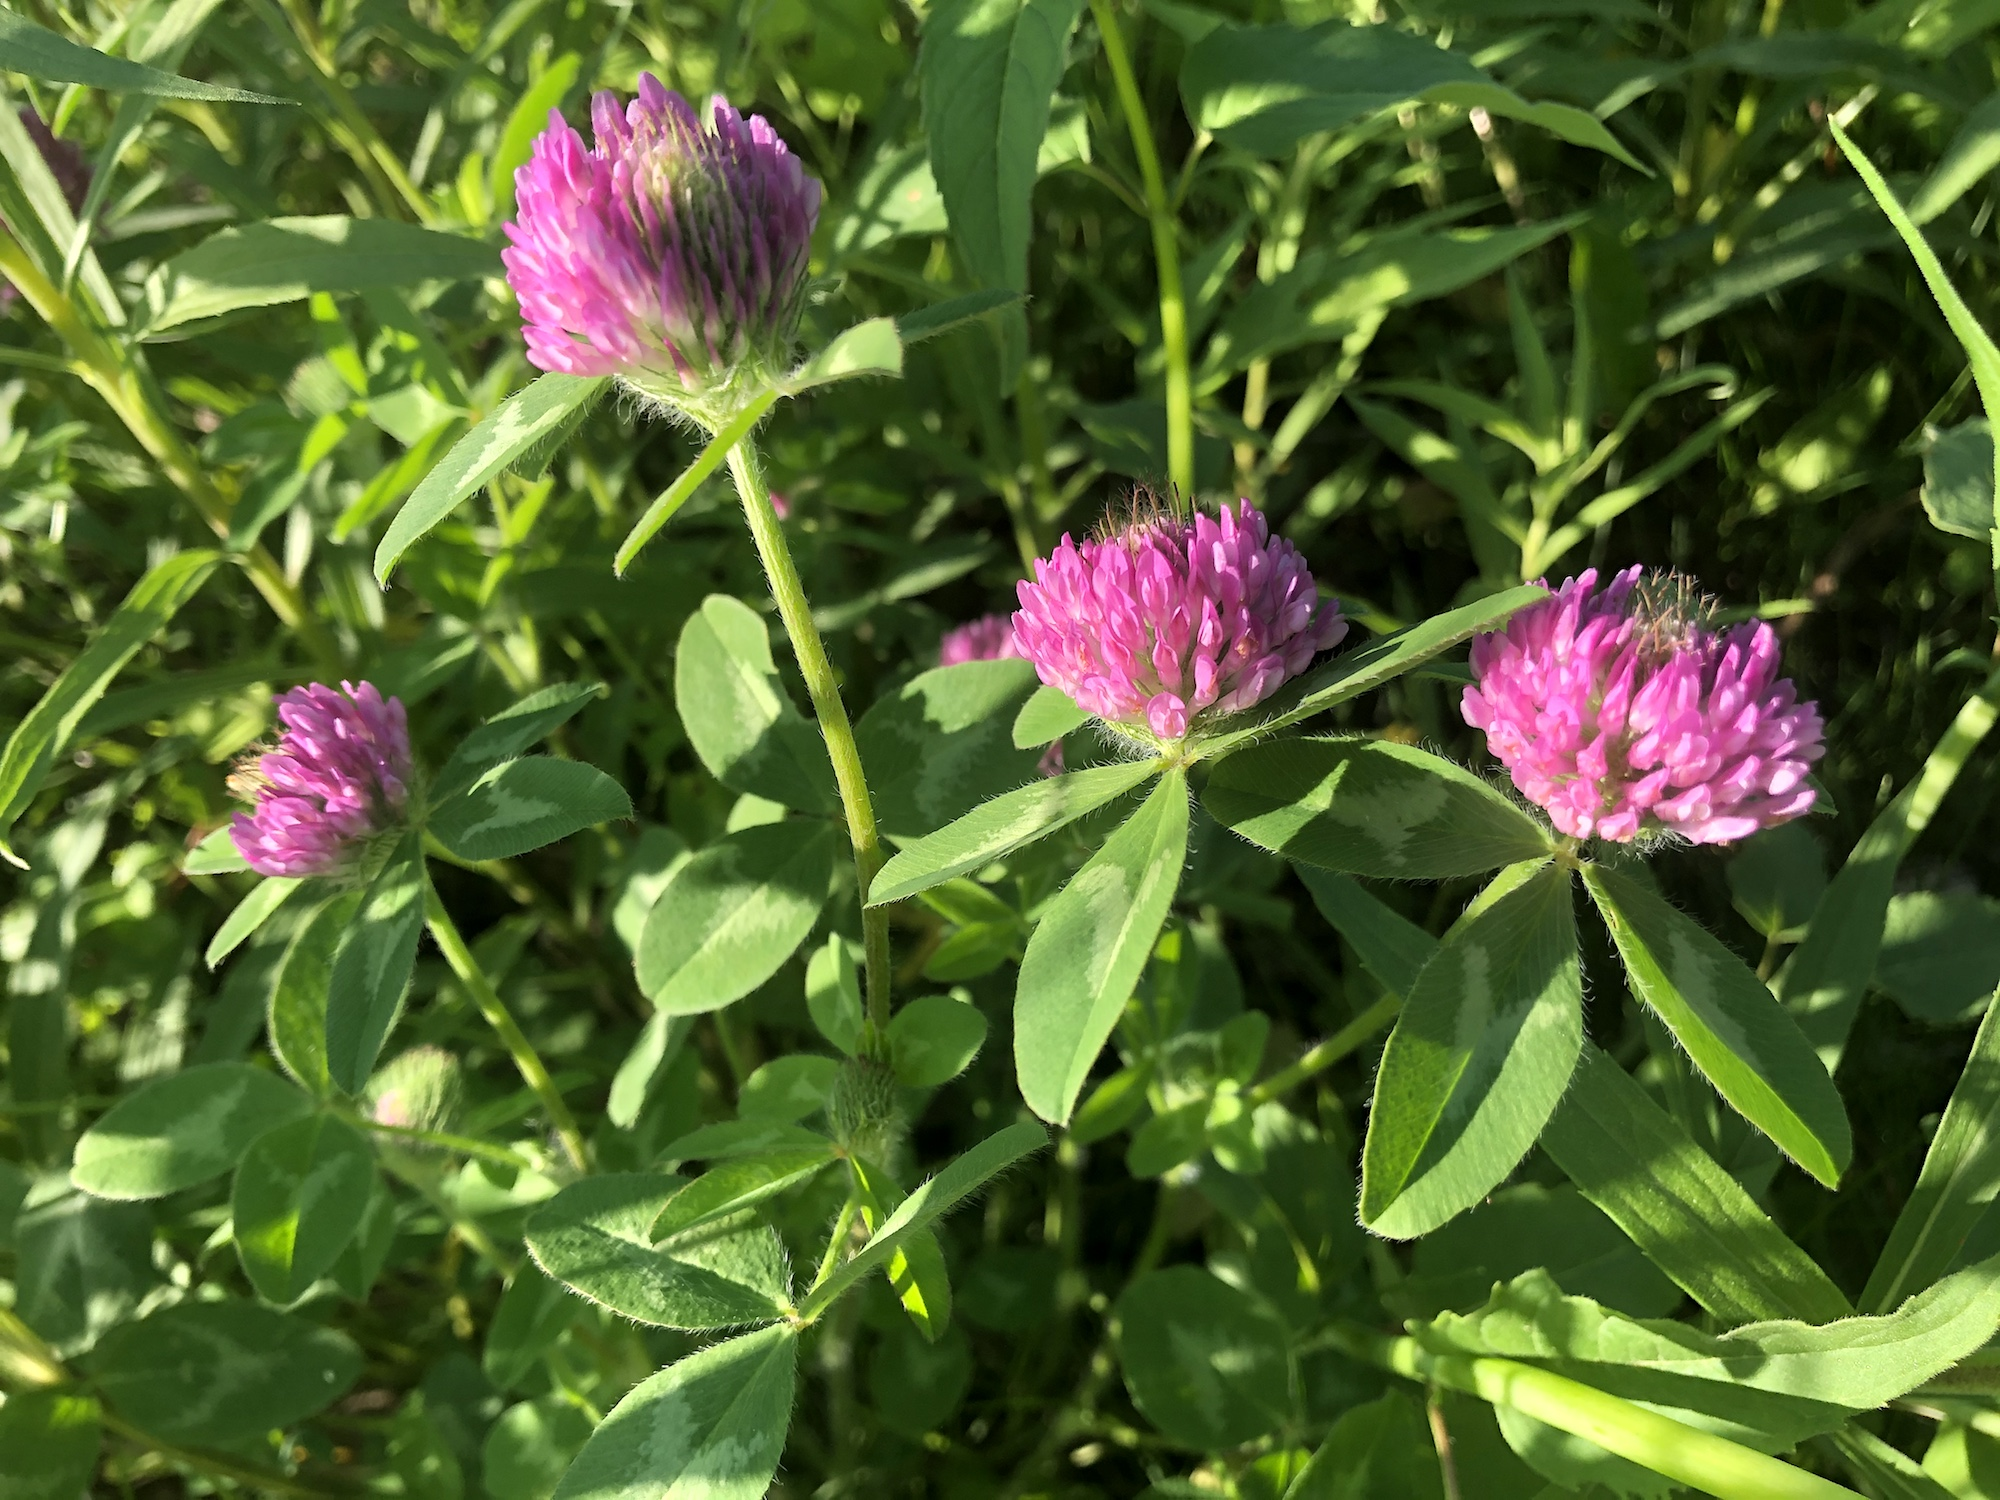 Red Clover on the bank of the retaining pond on June 2, 2020.